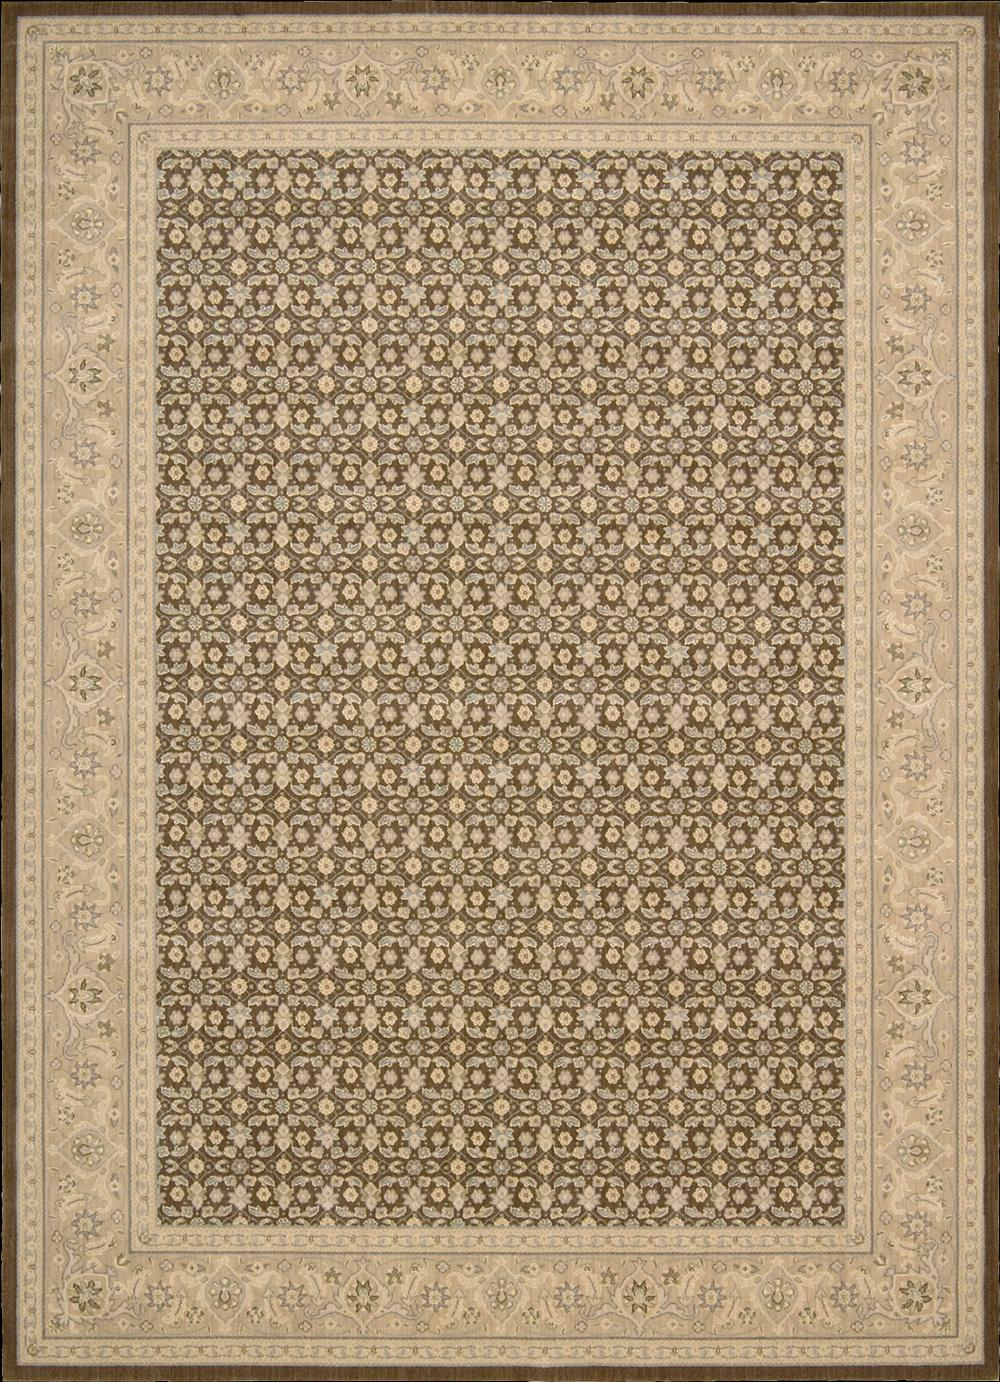 "Nourison Persian Empire Area Rug 3'6"" x 5'6"" - Item Number: 44202"